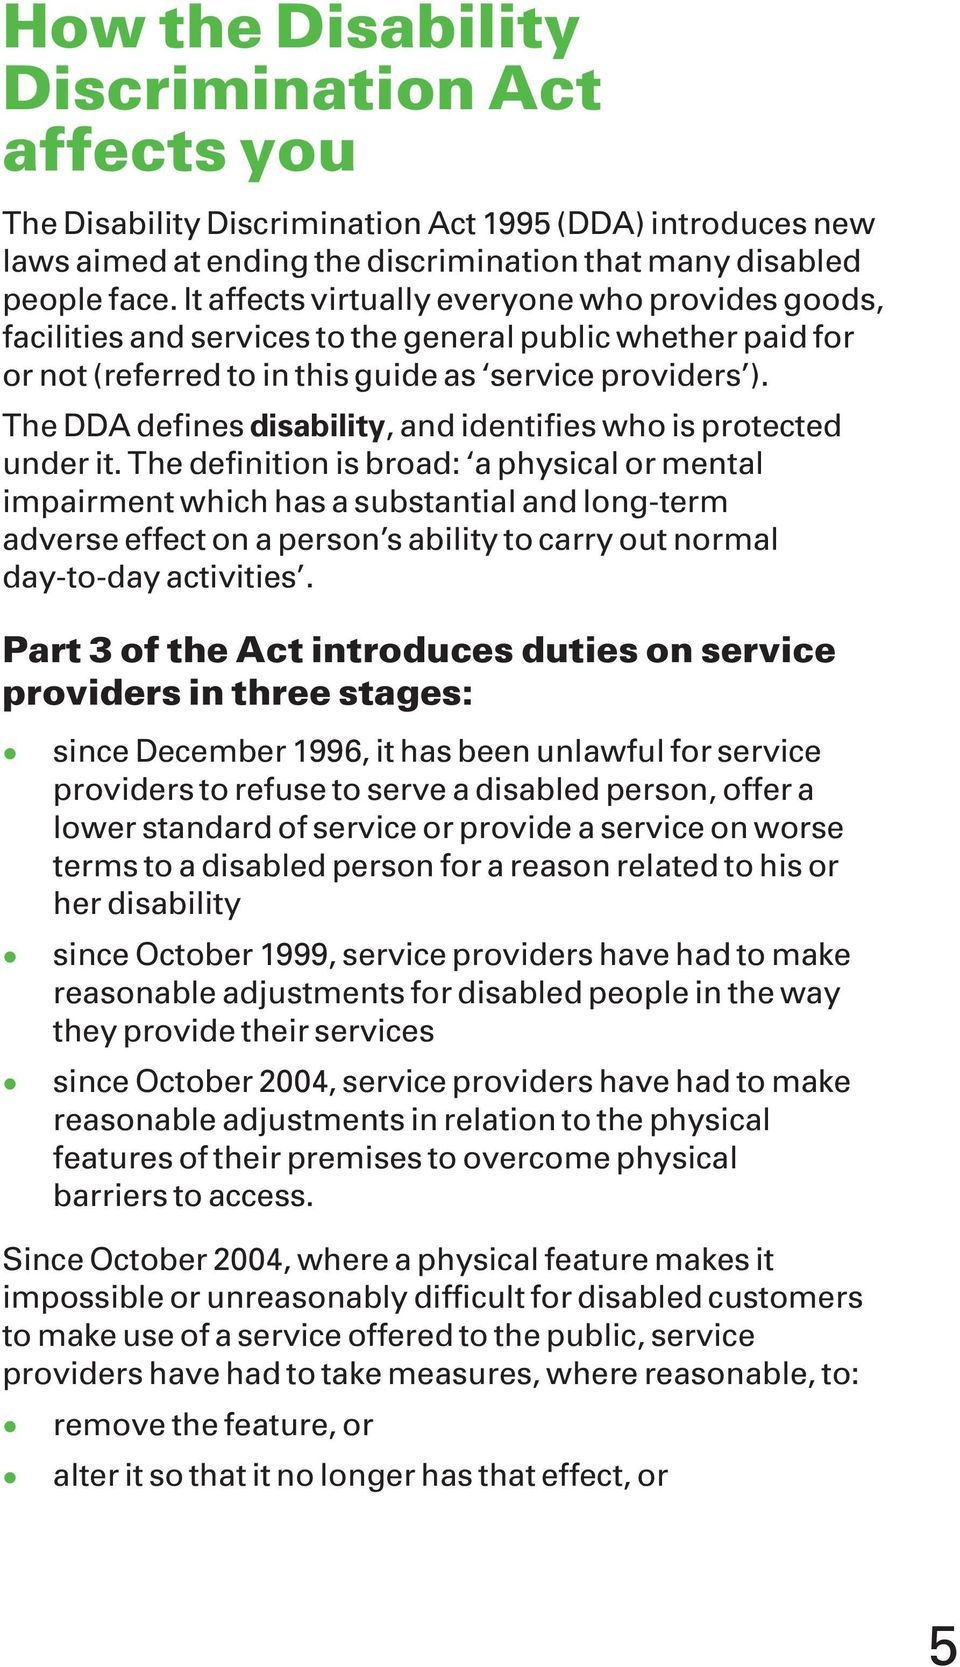 The DDA defines disability, and identifies who is protected under it.